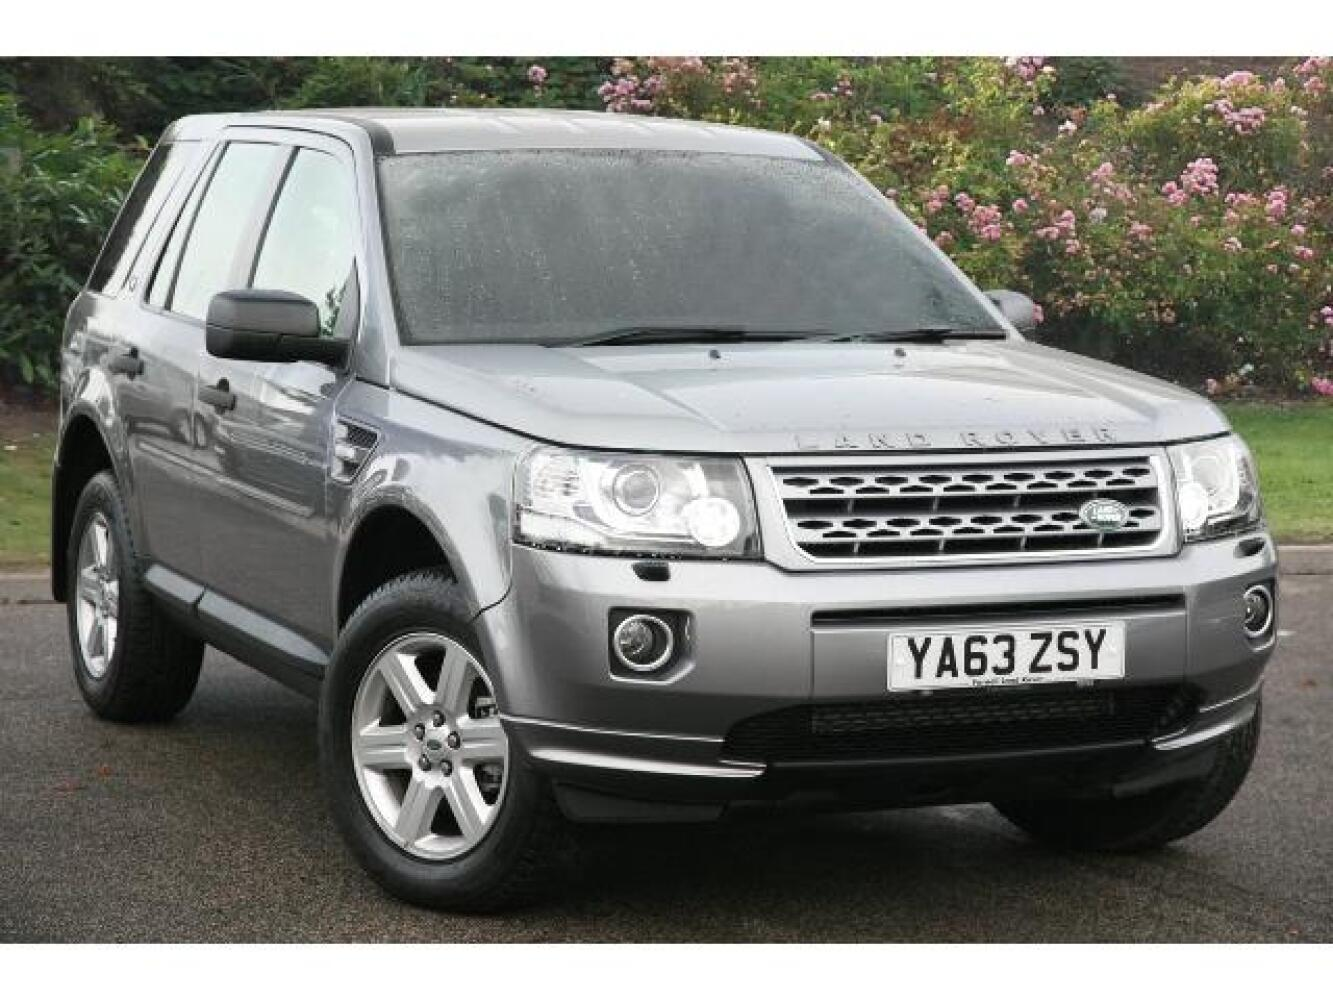 used land rover freelander 2 2 td4 gs 5dr diesel station wagon for sale farnell land rover. Black Bedroom Furniture Sets. Home Design Ideas